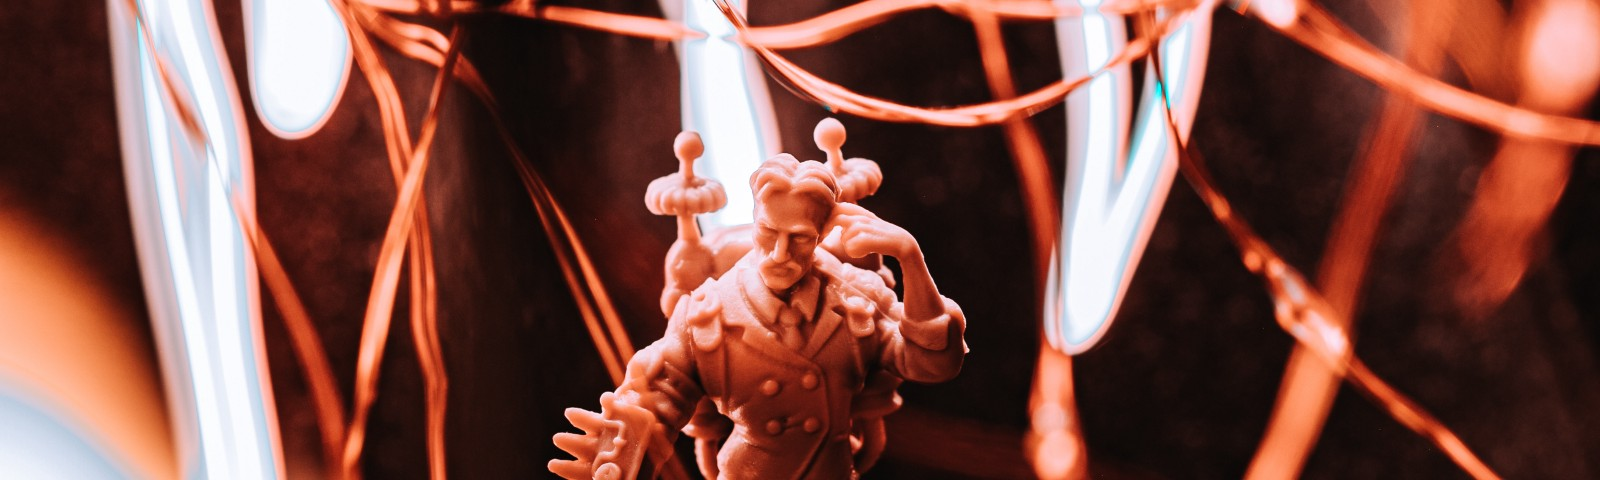 Nikola Tesla as a miniature from the board game, Monumental wrapped in fairy lights with long exposure LEDs in the background